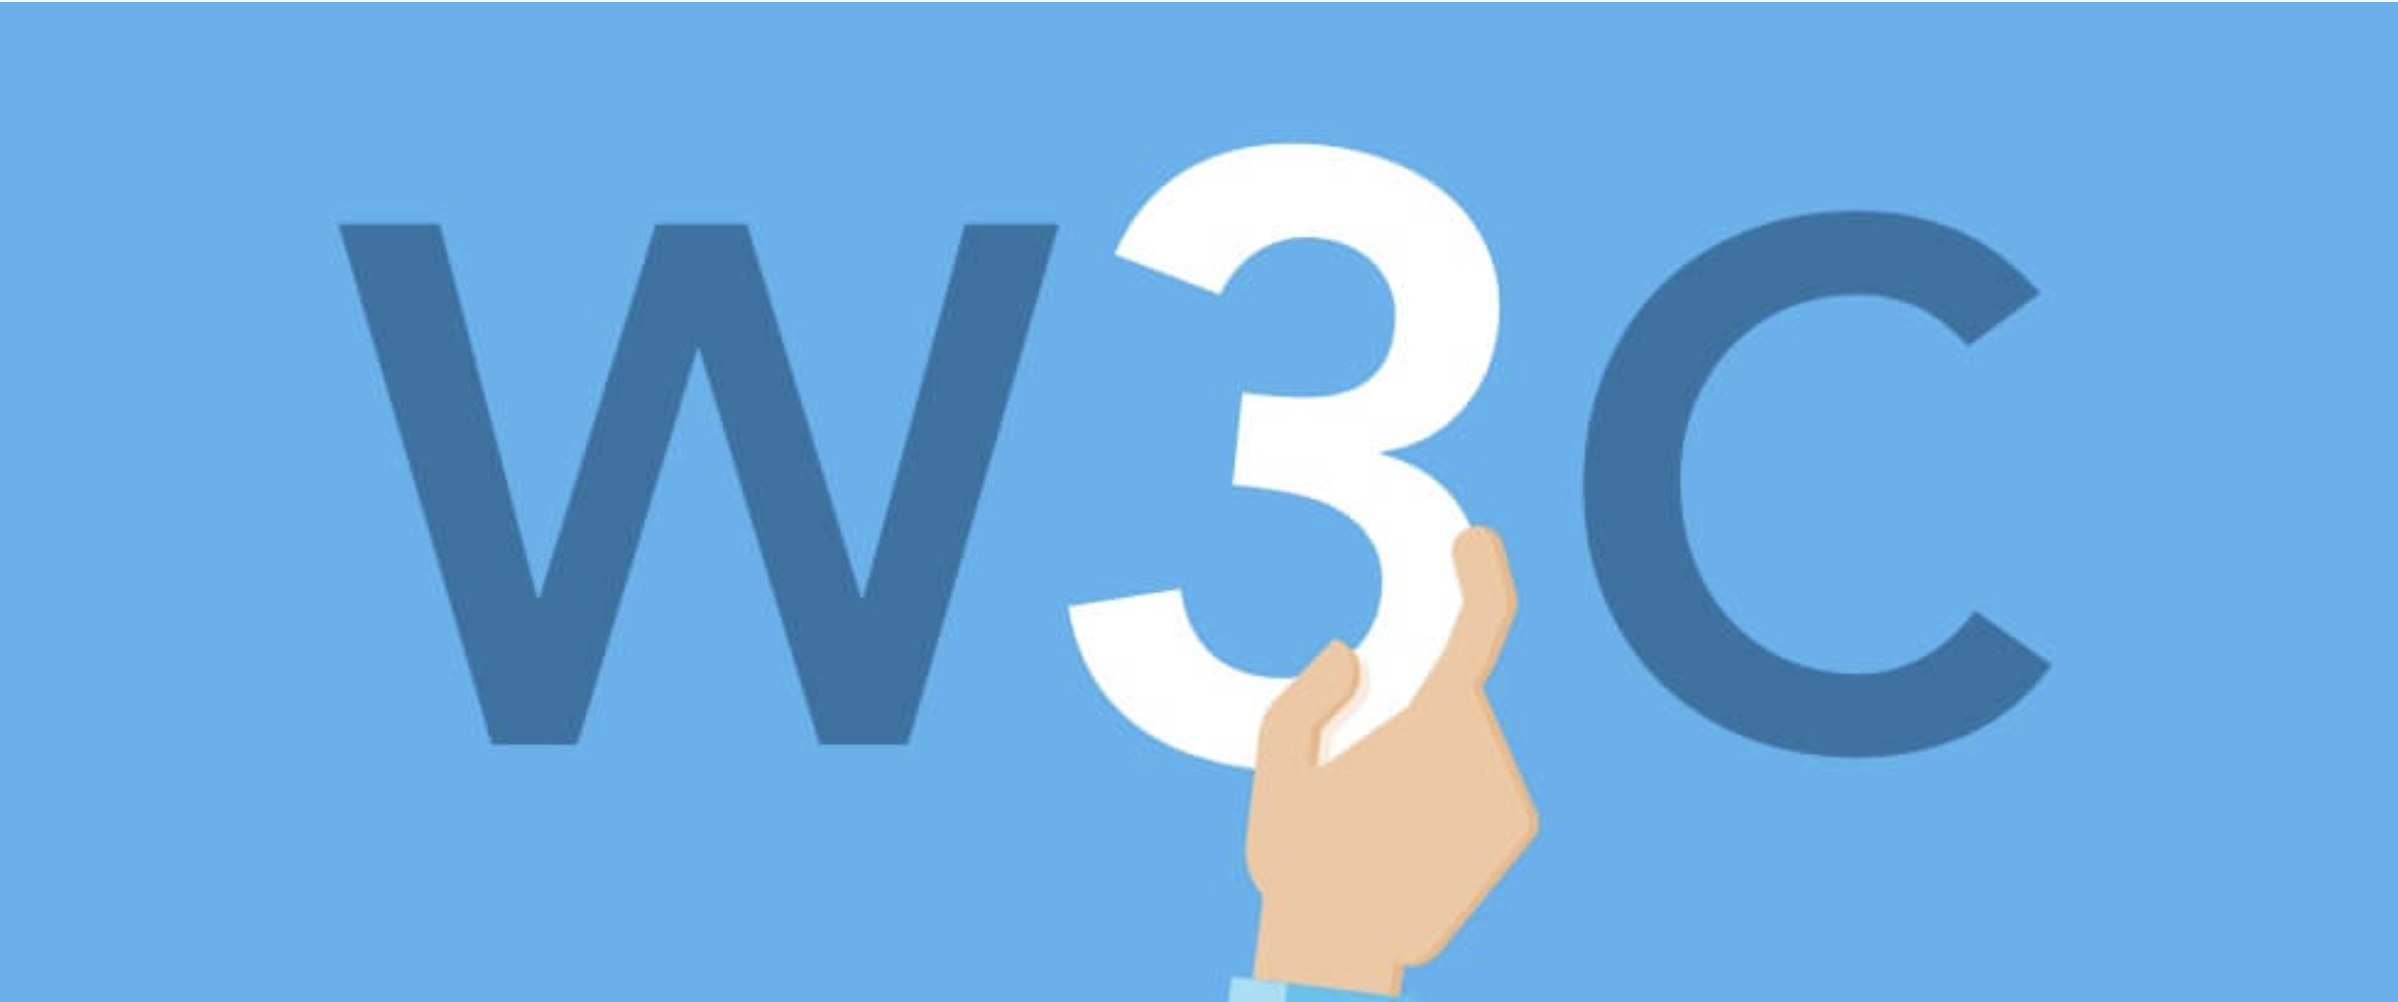 Most Asked Question in Web Development - W3C or not W3C